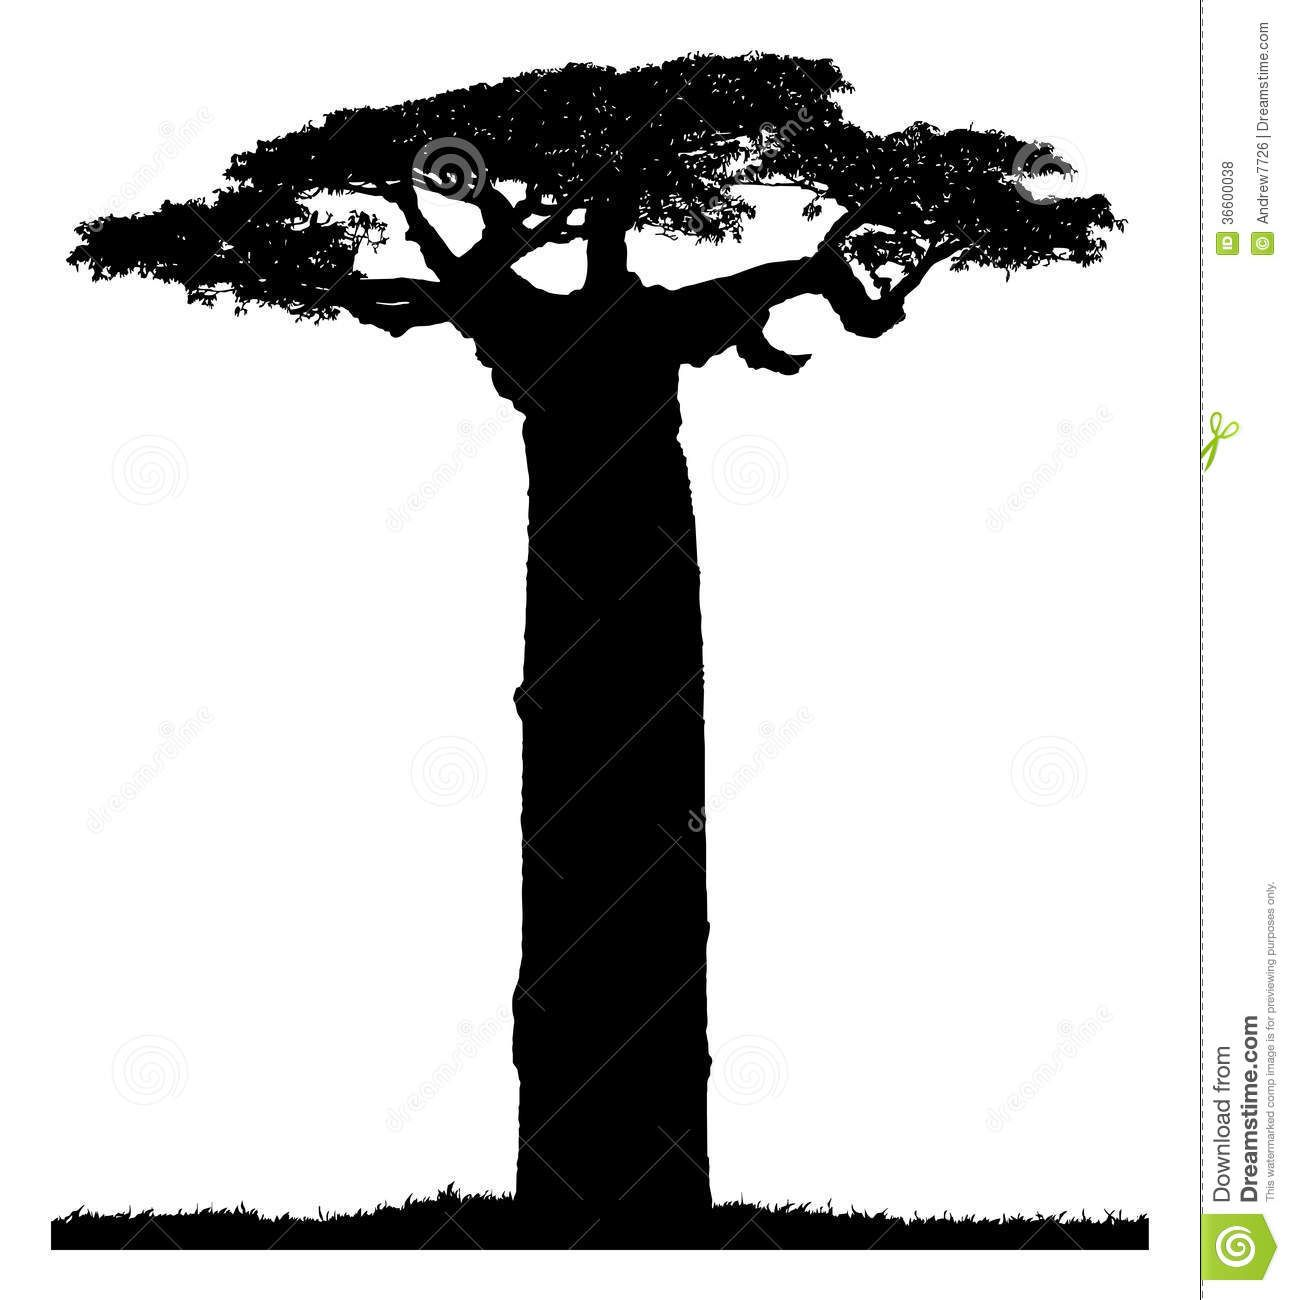 56 Awesome baobab tree clipart.